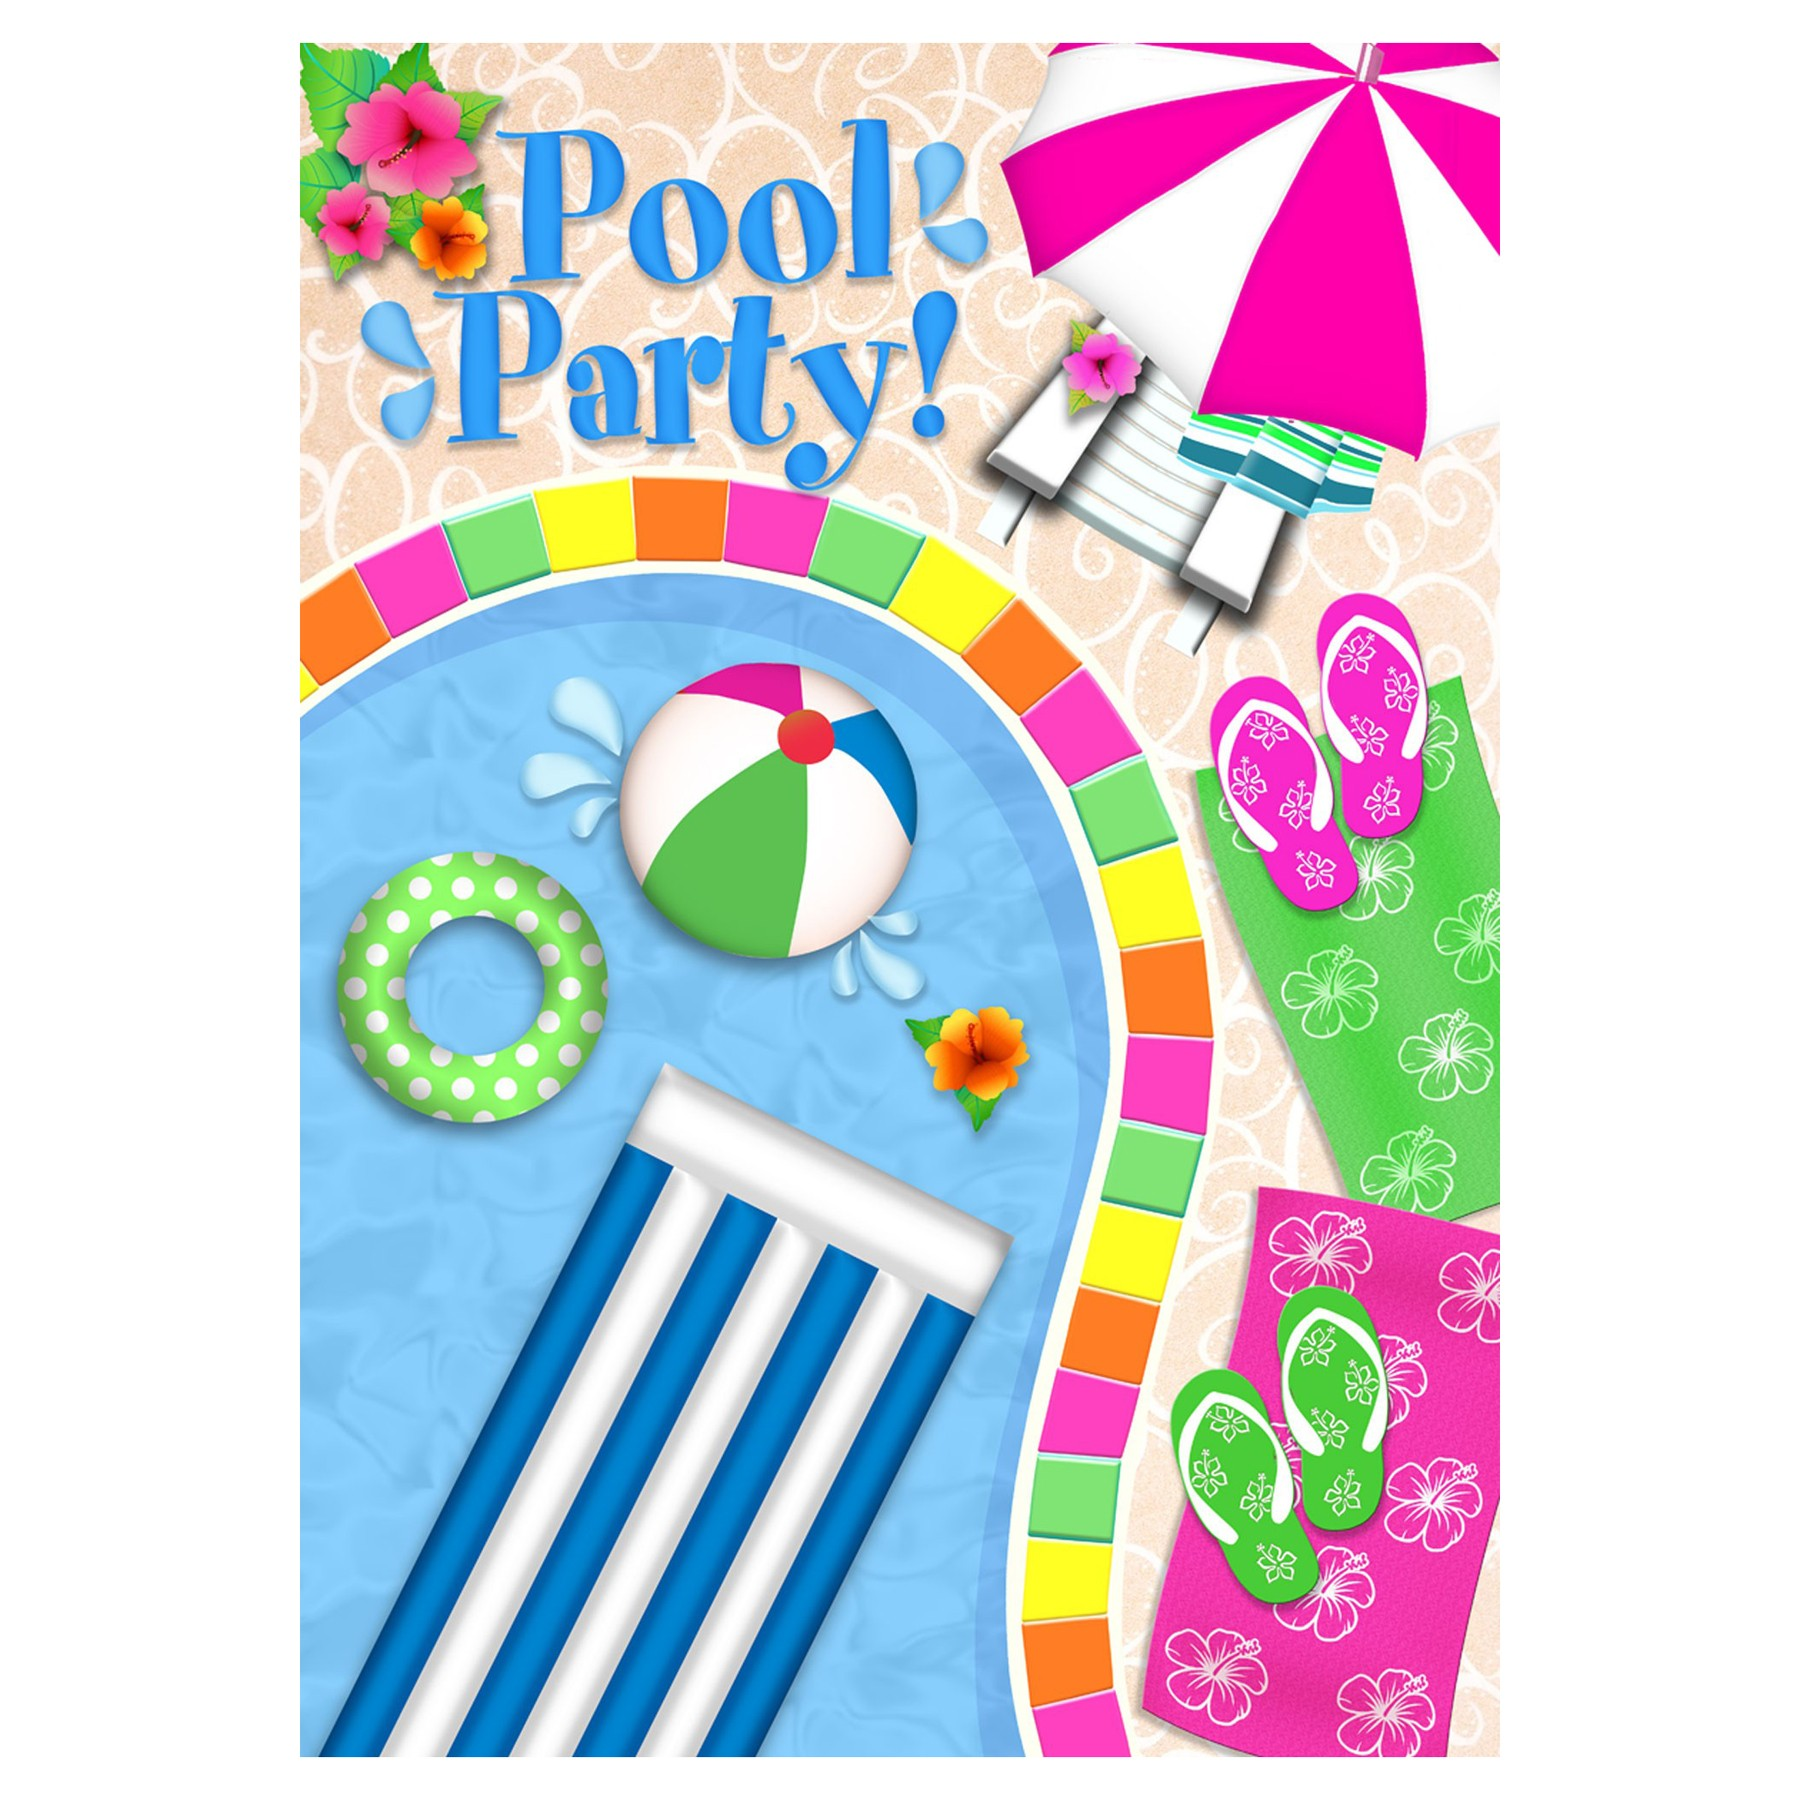 1800x1800 Pool Clip Art Images Free Clipart 2